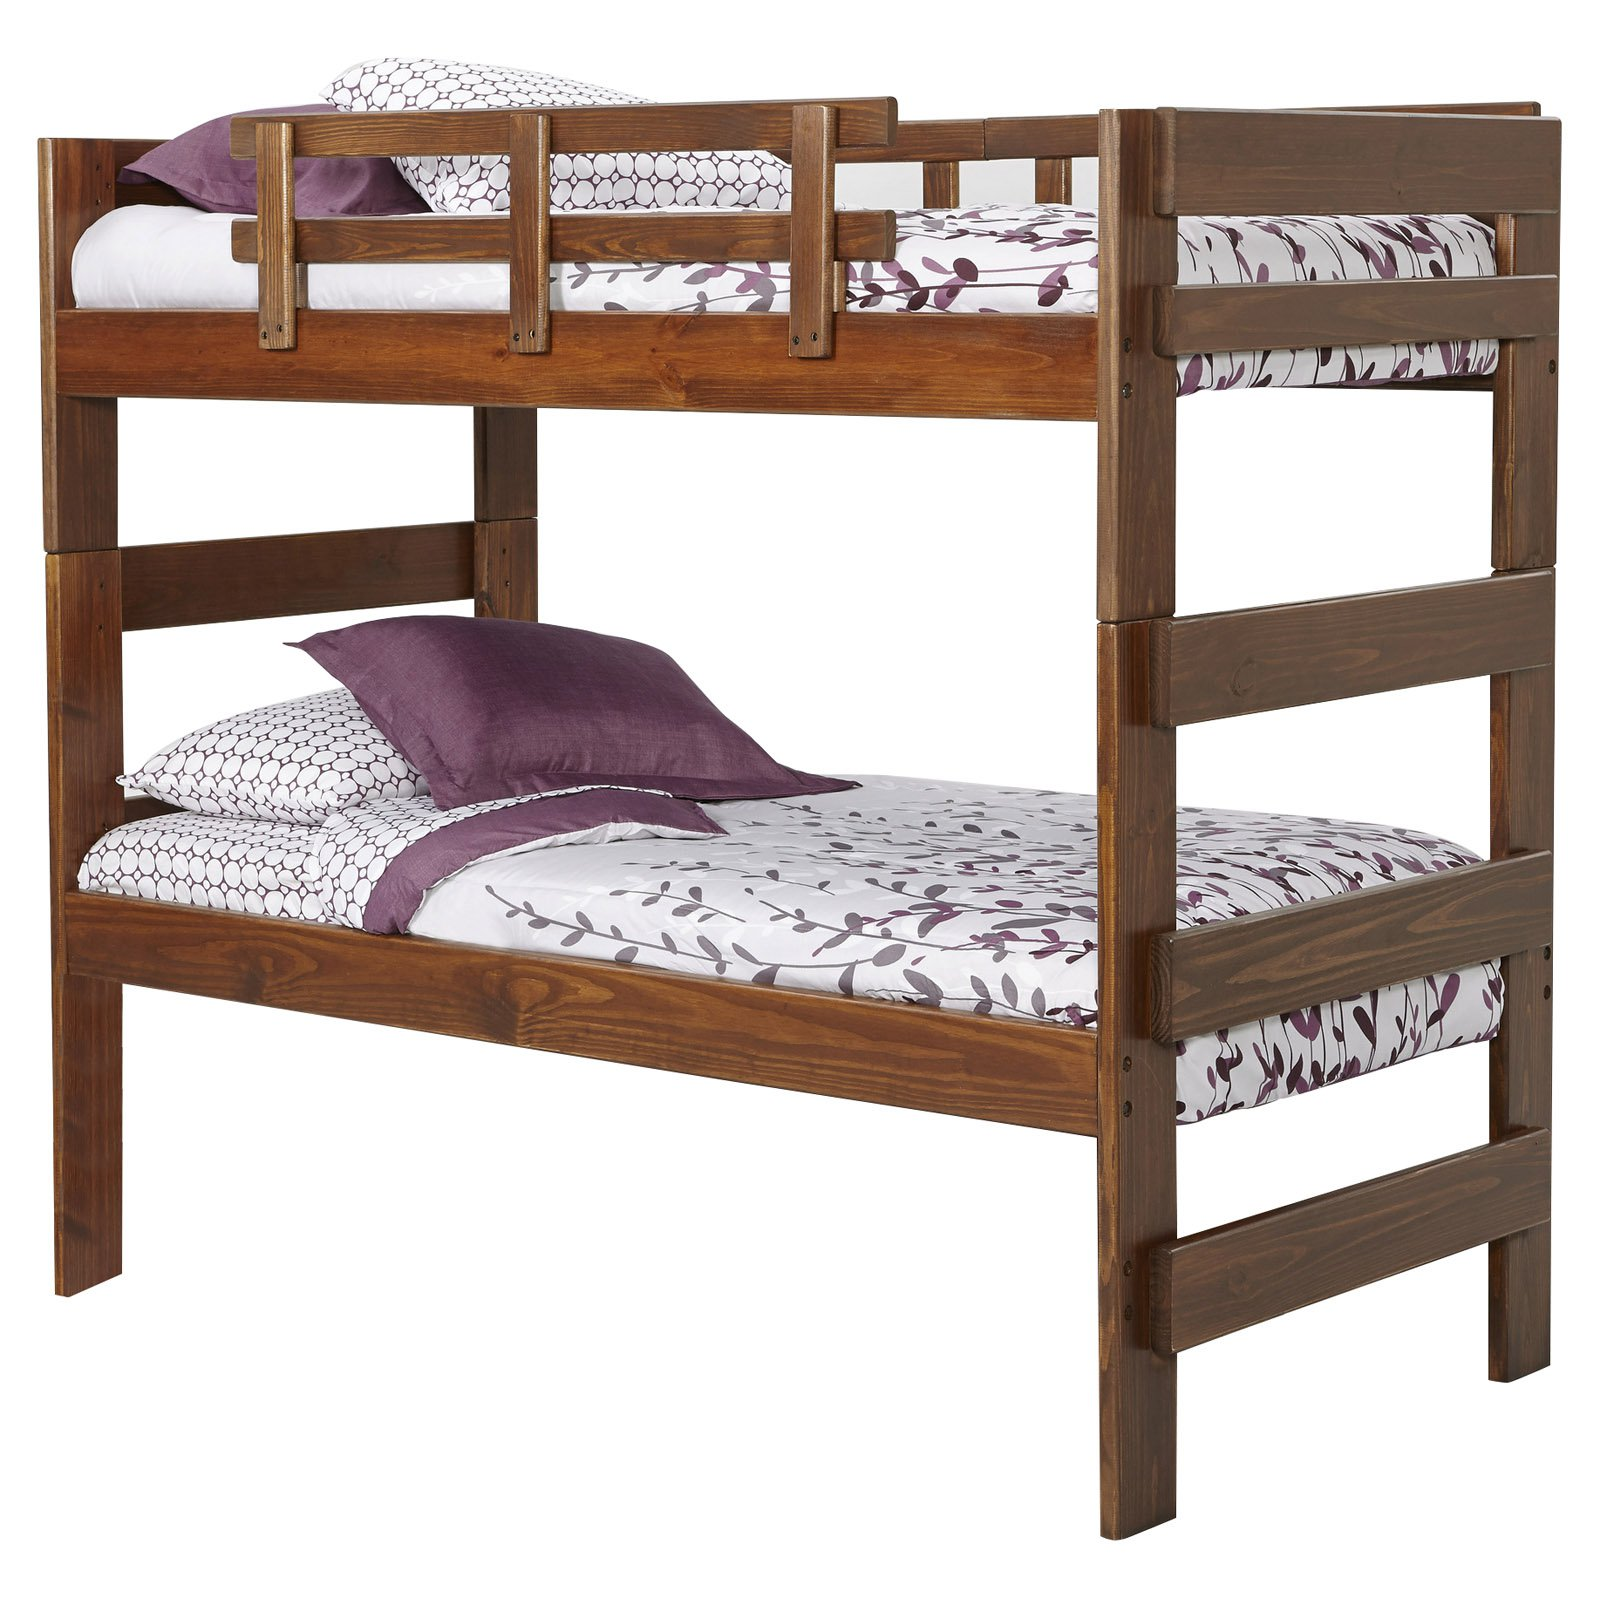 Stackable Twin Beds Woodcrest Heartland Extra Tall Stacking Twin Over Twin Bunk Bed